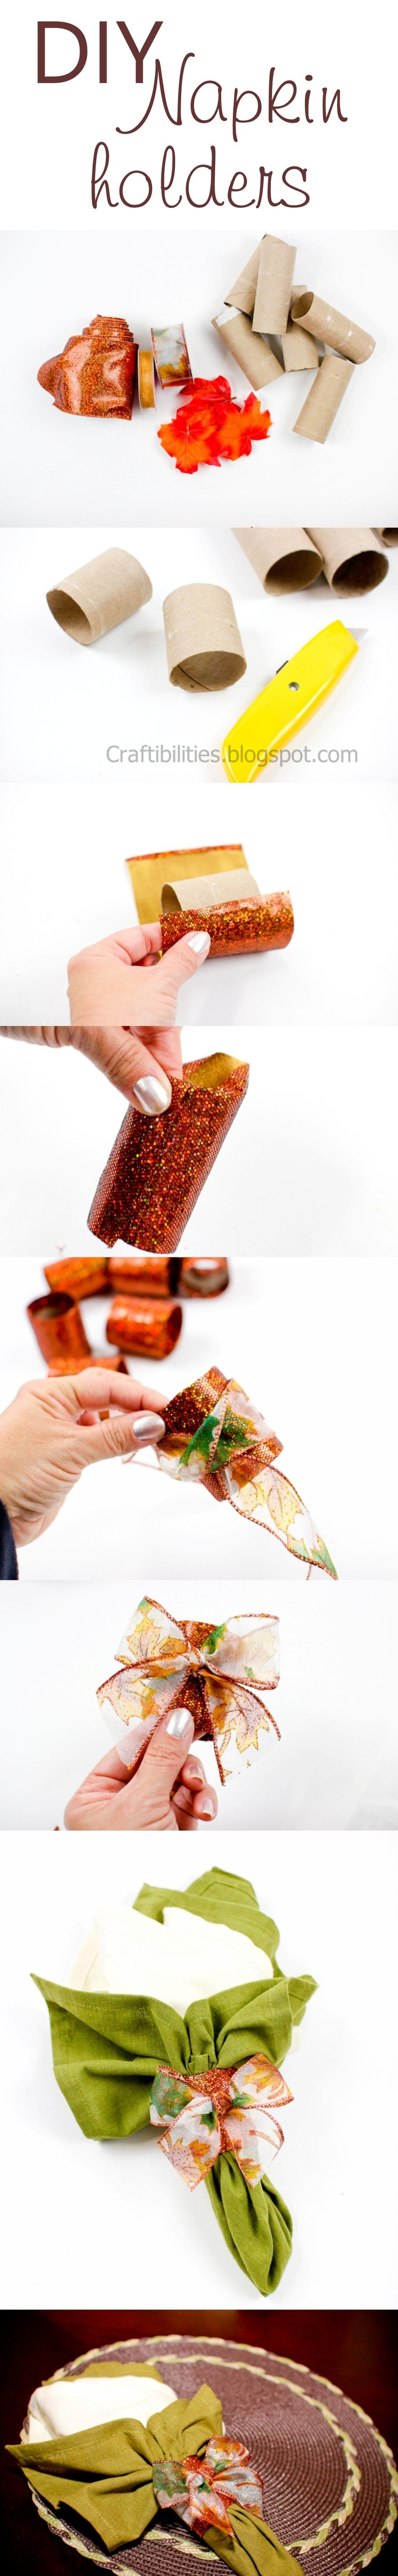 Recycling toilet paper rolls into DIY napkin holders for Thanksgiving